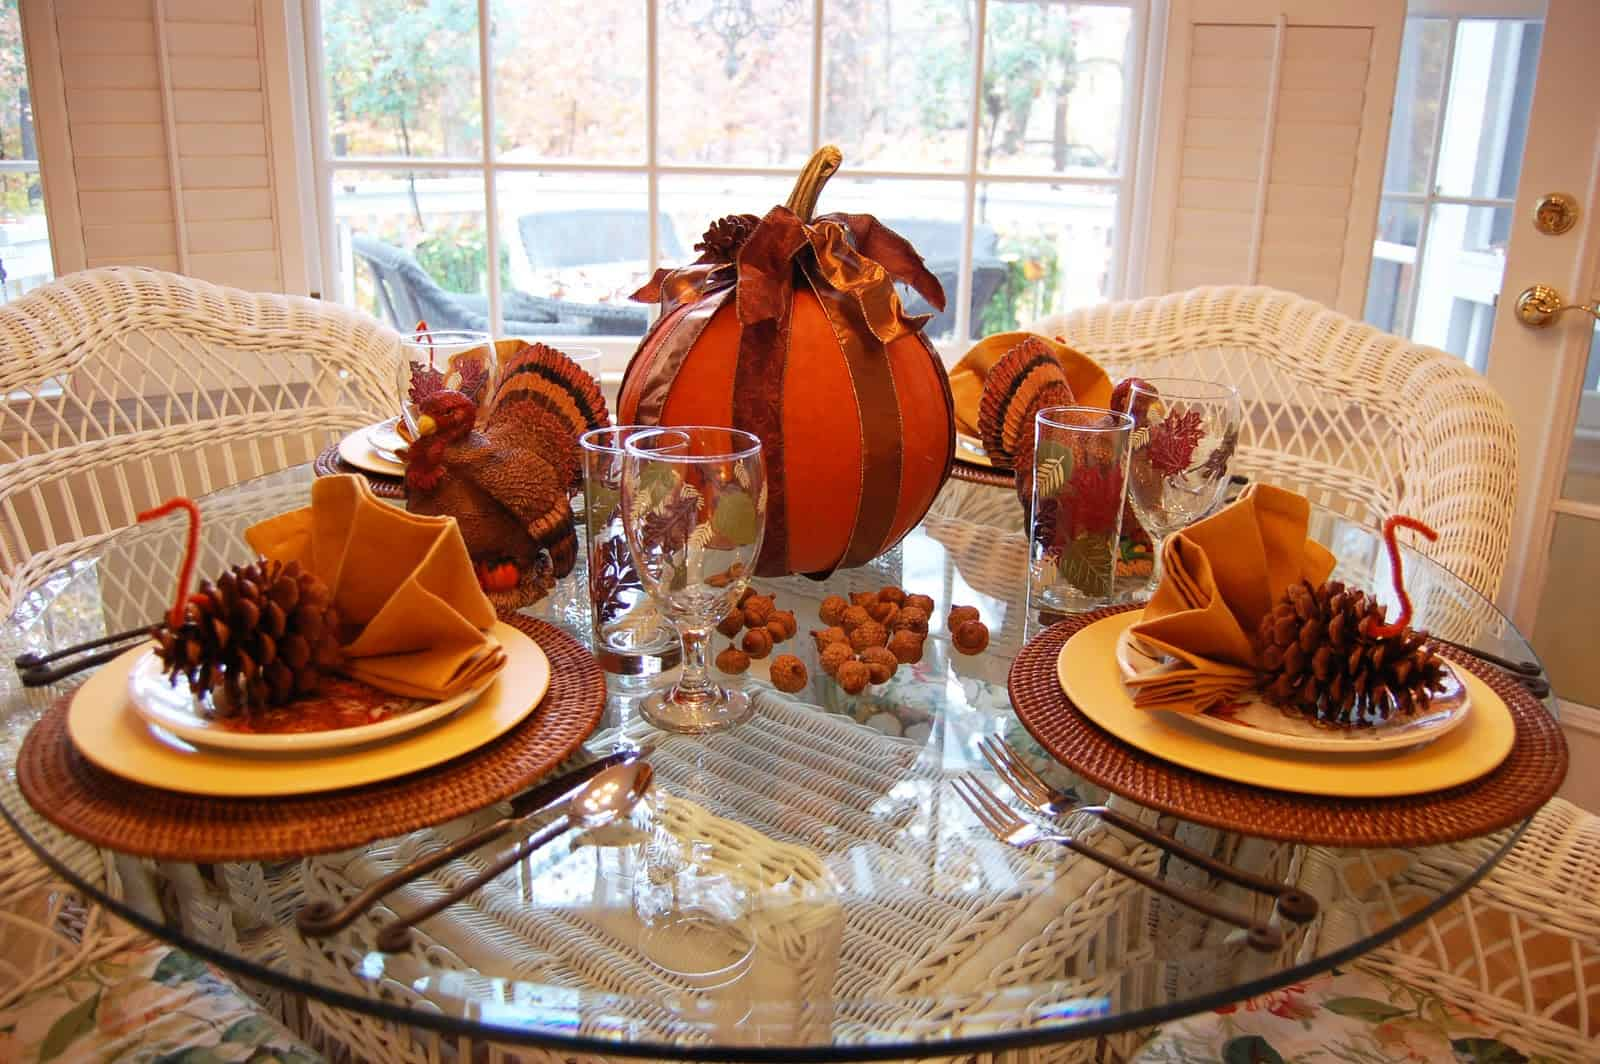 fetching thanksgiving home decor ideas thanksgiving round table tablescapes ideas round glass table thanksgiving table decoration paper pumpkin thanksgiving decoration thanksgiving decor thanksgiving tabl